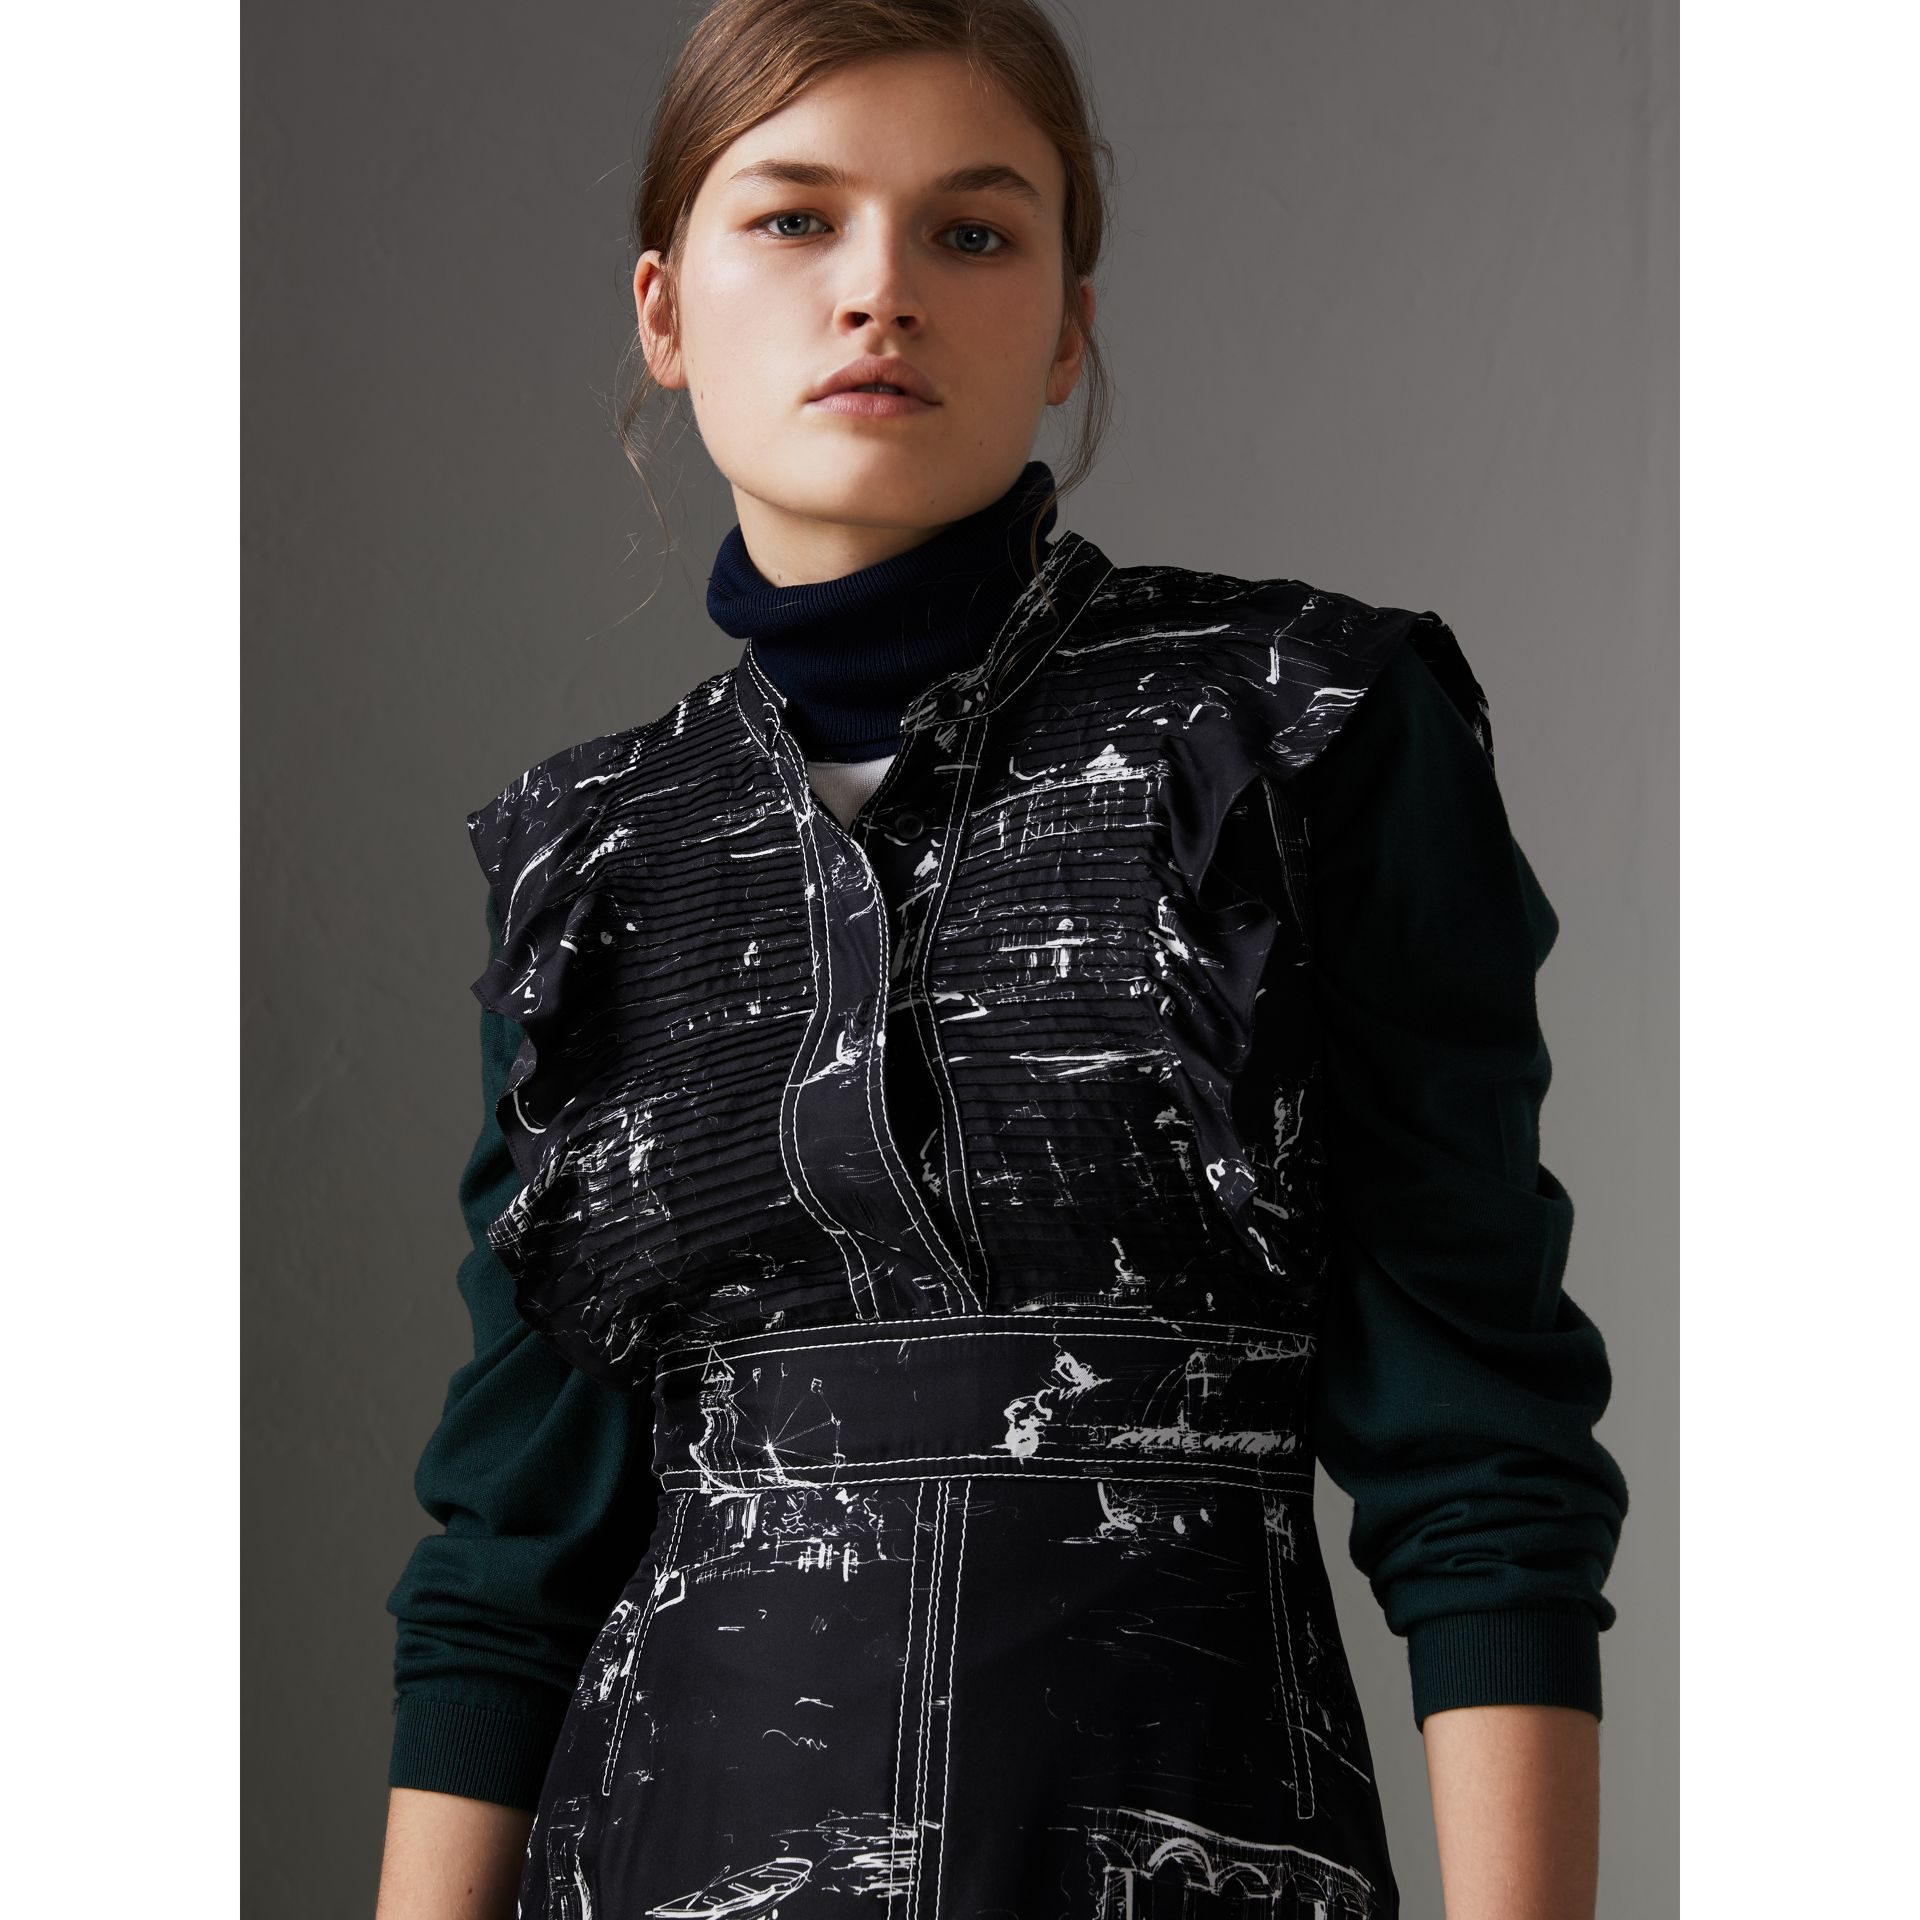 Ruffle Detail Landmark Print Silk Dress in Black - Women | Burberry - gallery image 1